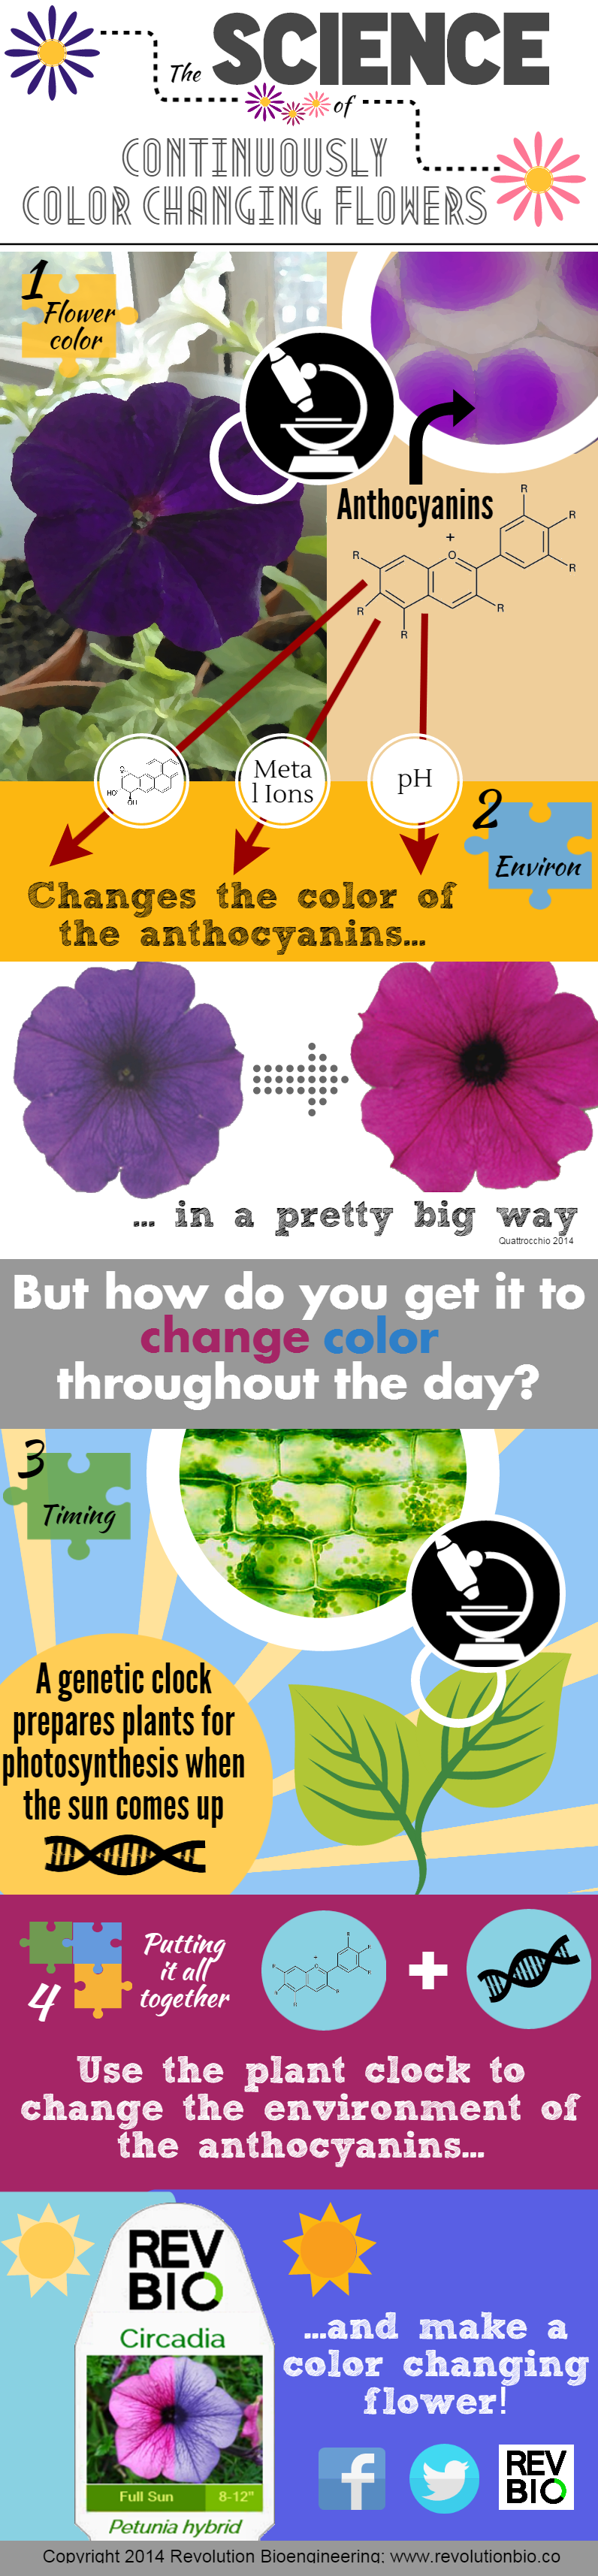 Petunia_circadia_Continuously_Color_Changing_Flowers